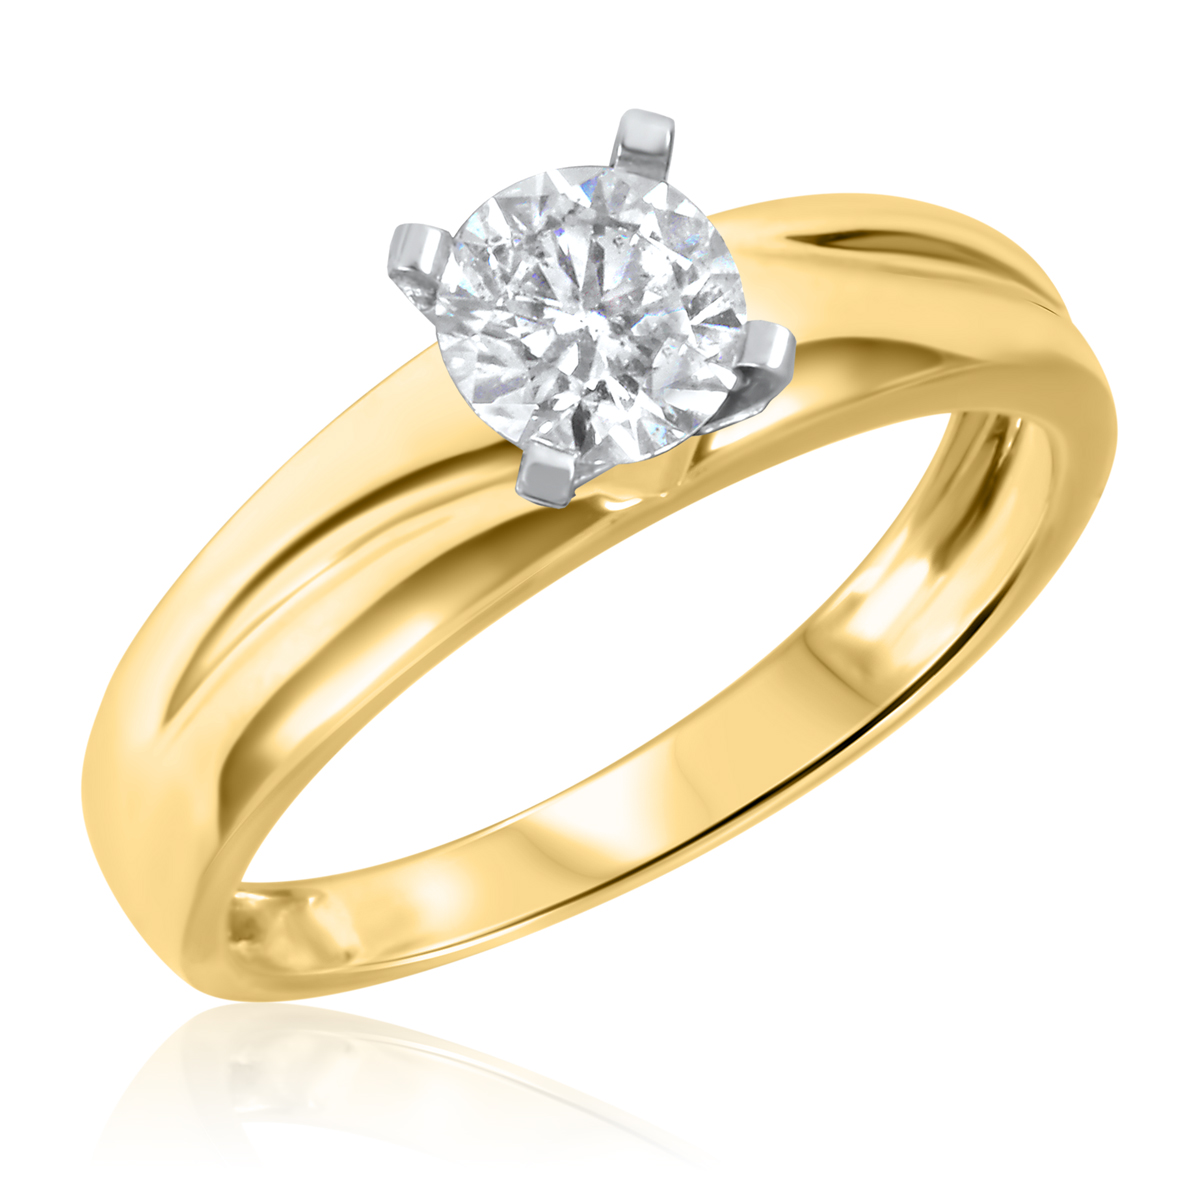 1/2 CT. T.W. Diamond Ladies Engagement Ring 10K Yellow Gold- Size 8